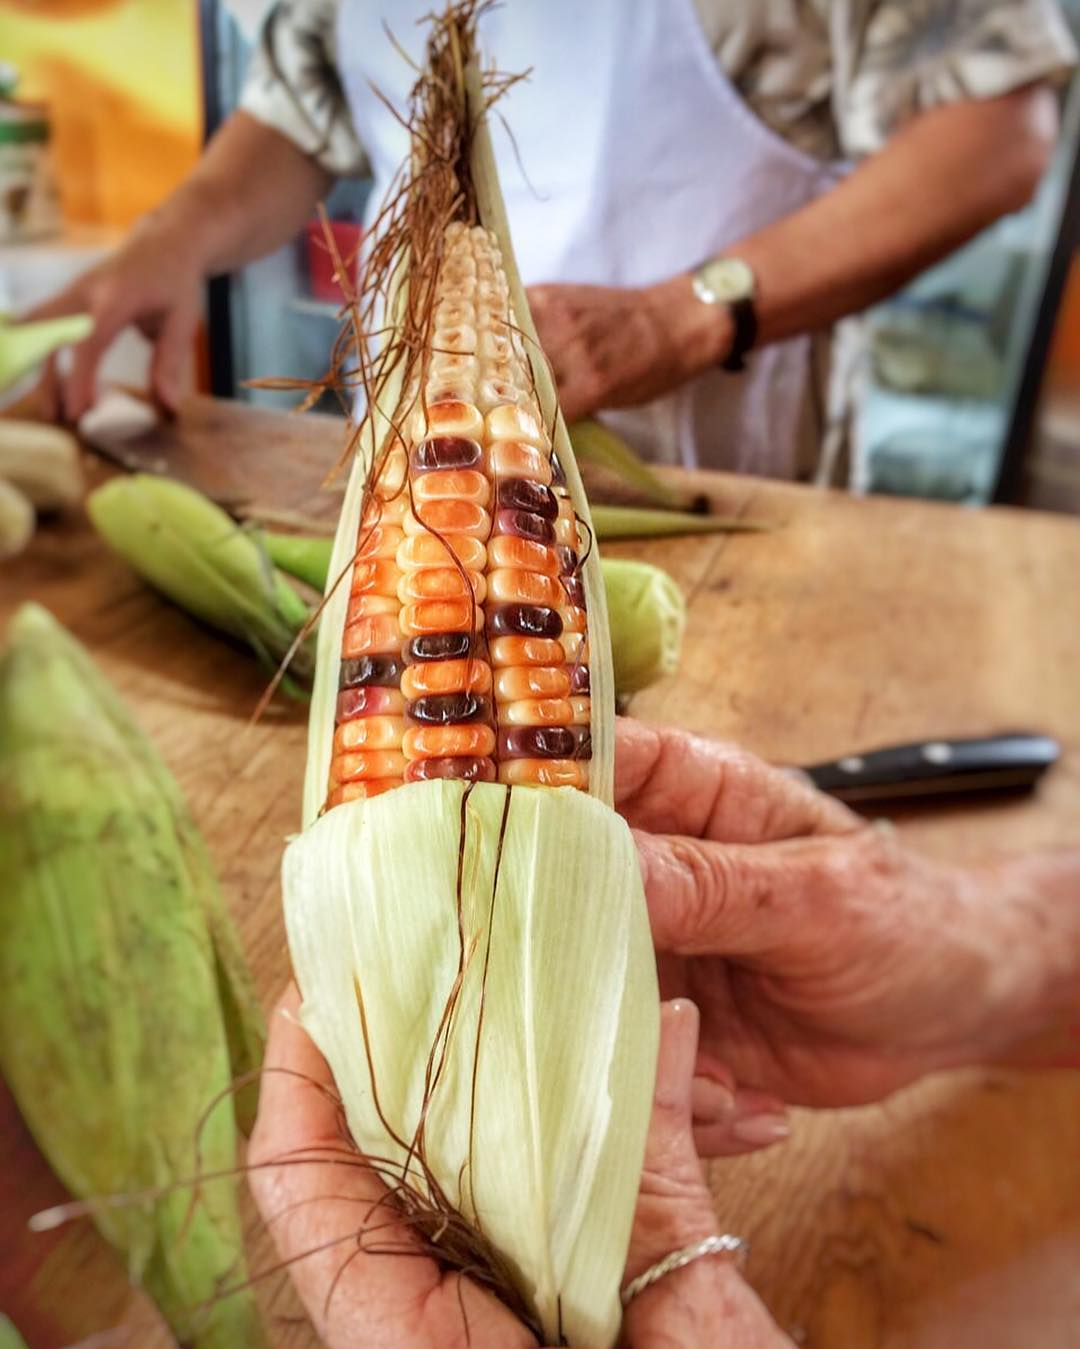 It is National #maize day in #mexico. I cannot think of a more important ingredient in #mexicancuisine guests made fresh corn tamales to be donated to our colonia for the local festival #lavillabonita #realmexicanfood #mytepoz #diadelmaiz